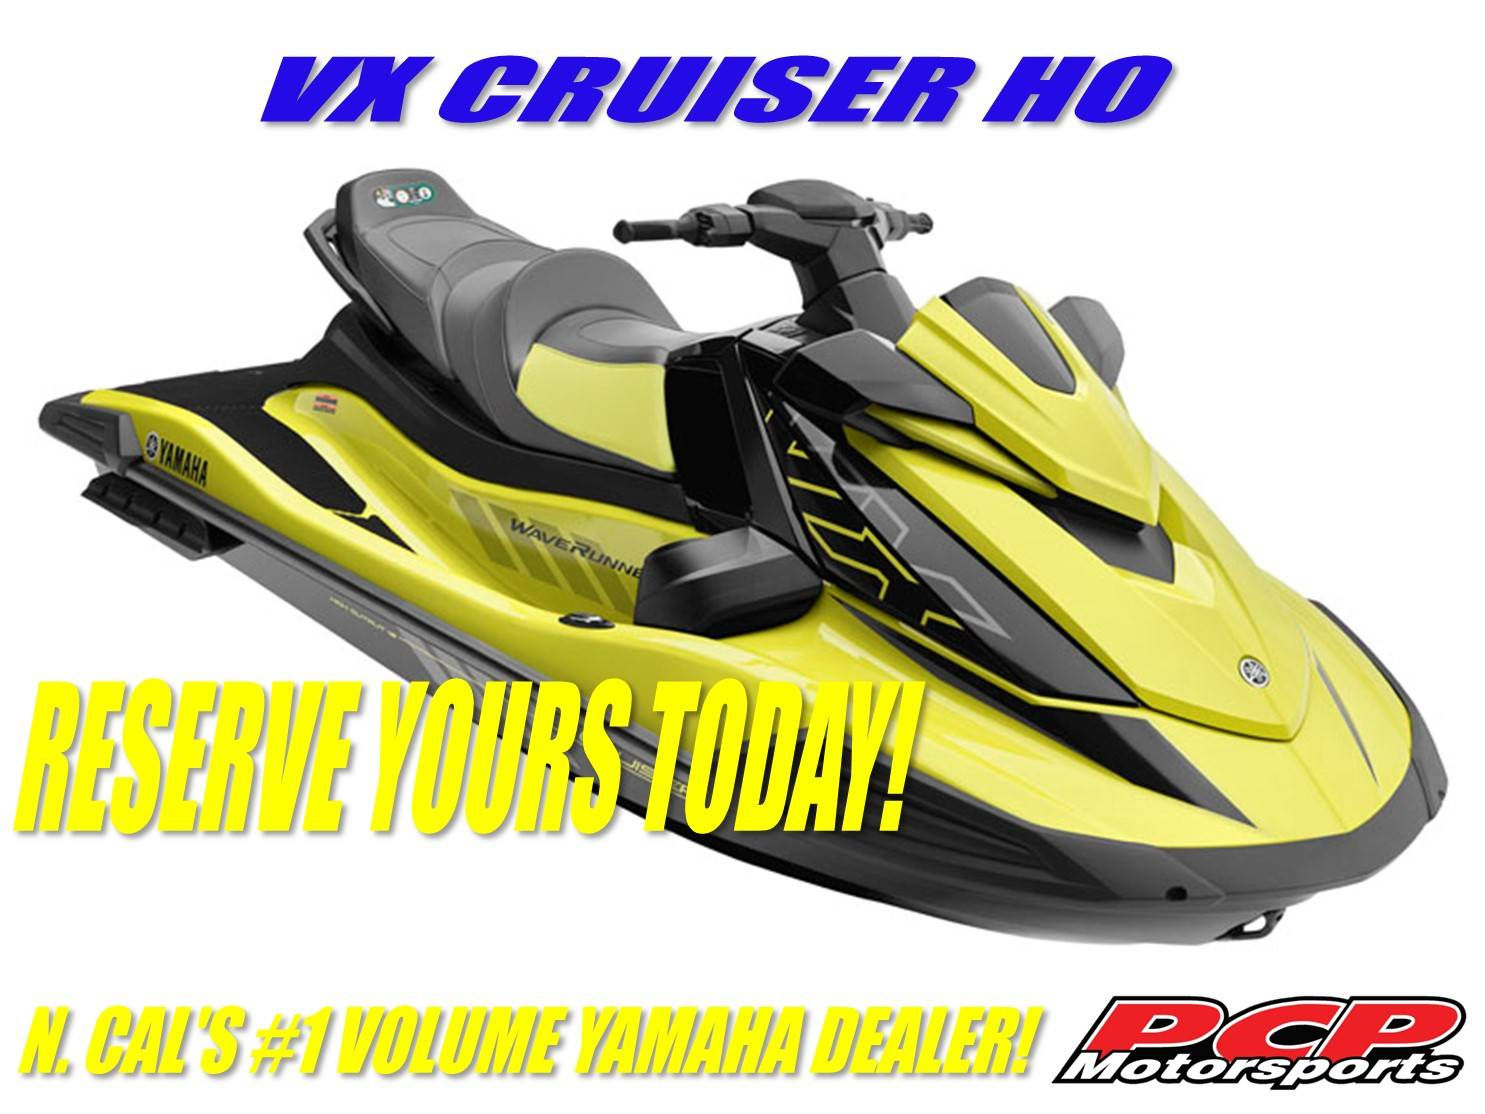 2021 Yamaha VX Cruiser HO in Sacramento, California